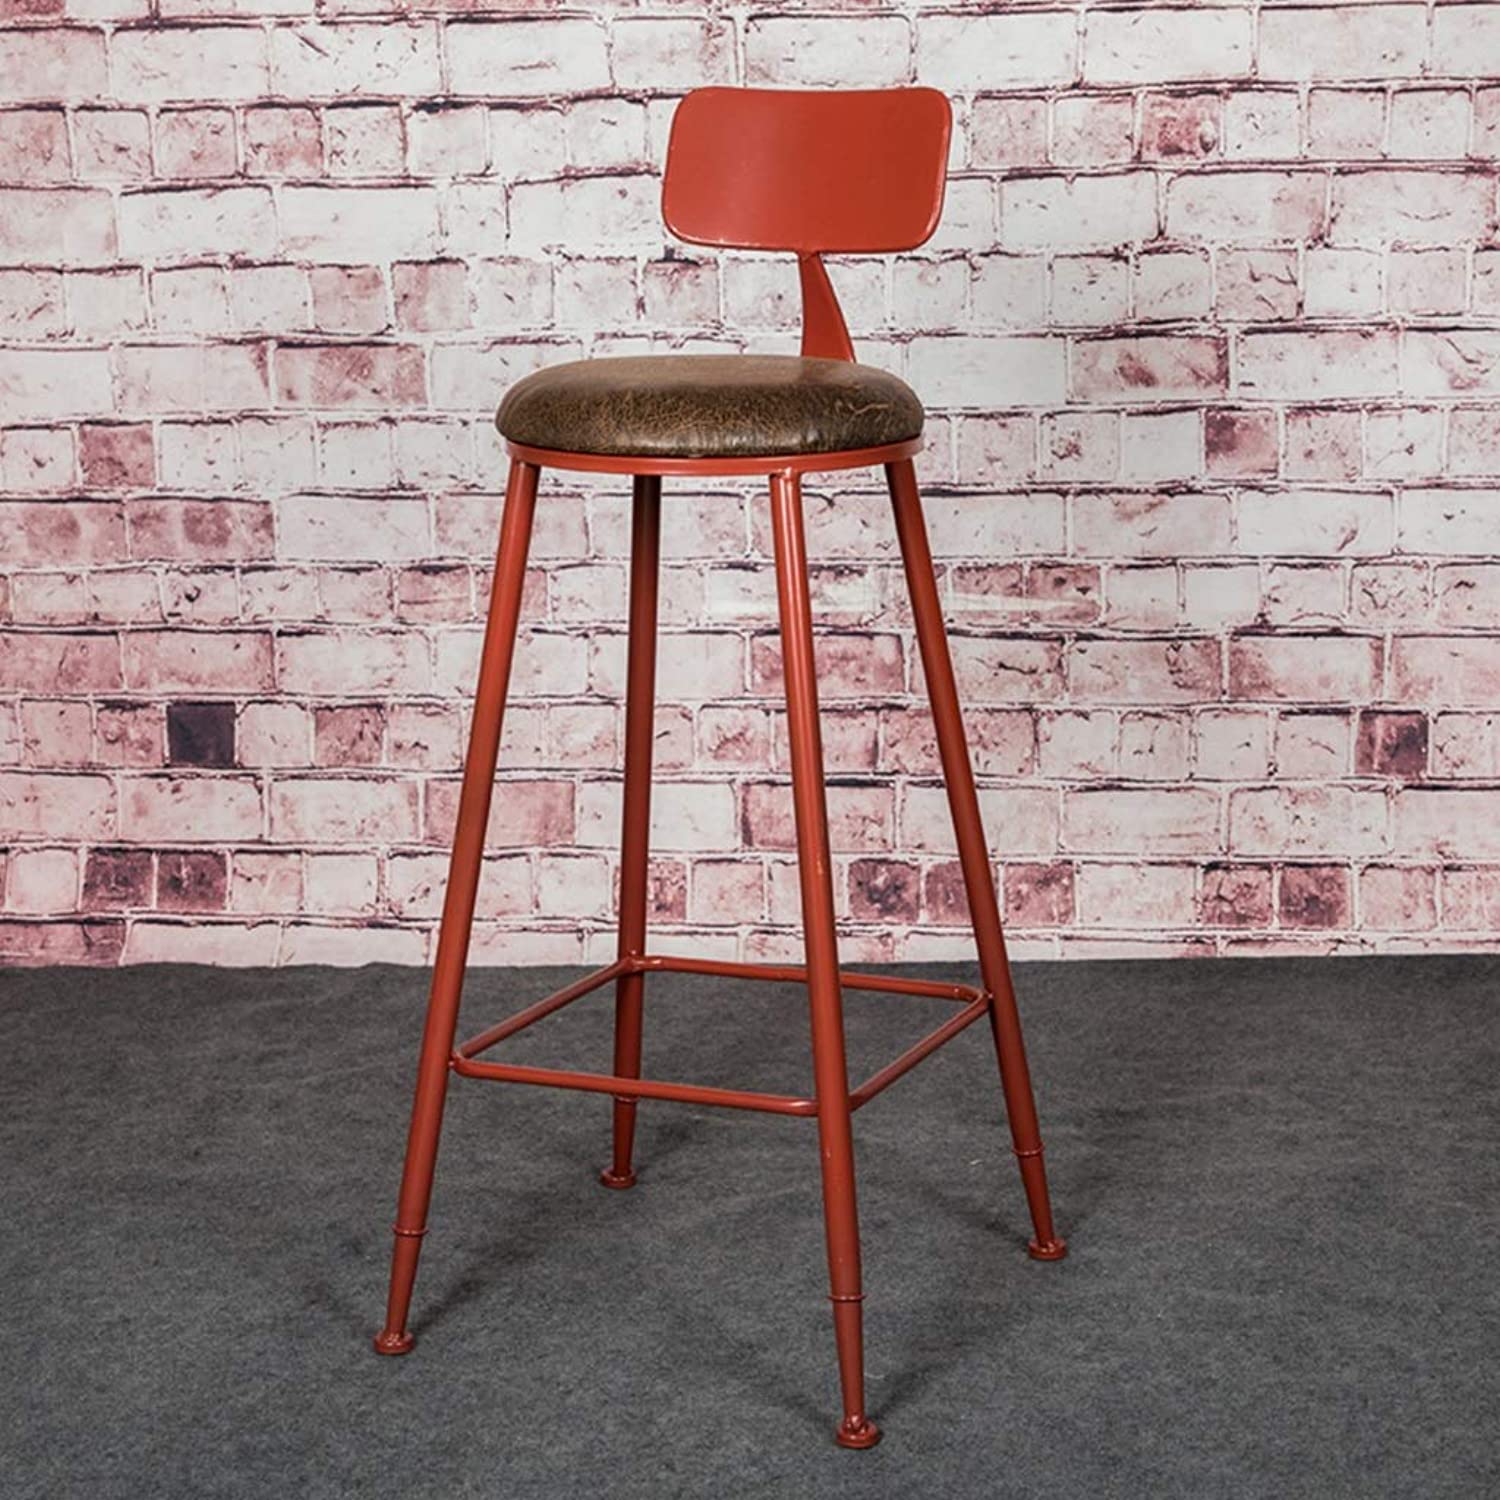 Retro Iron Art Bar Chair High Leg Stool Industrial Style Kitchen Household Seat Backrest Design Sturdy Non-Slip 0525A (color   Red)